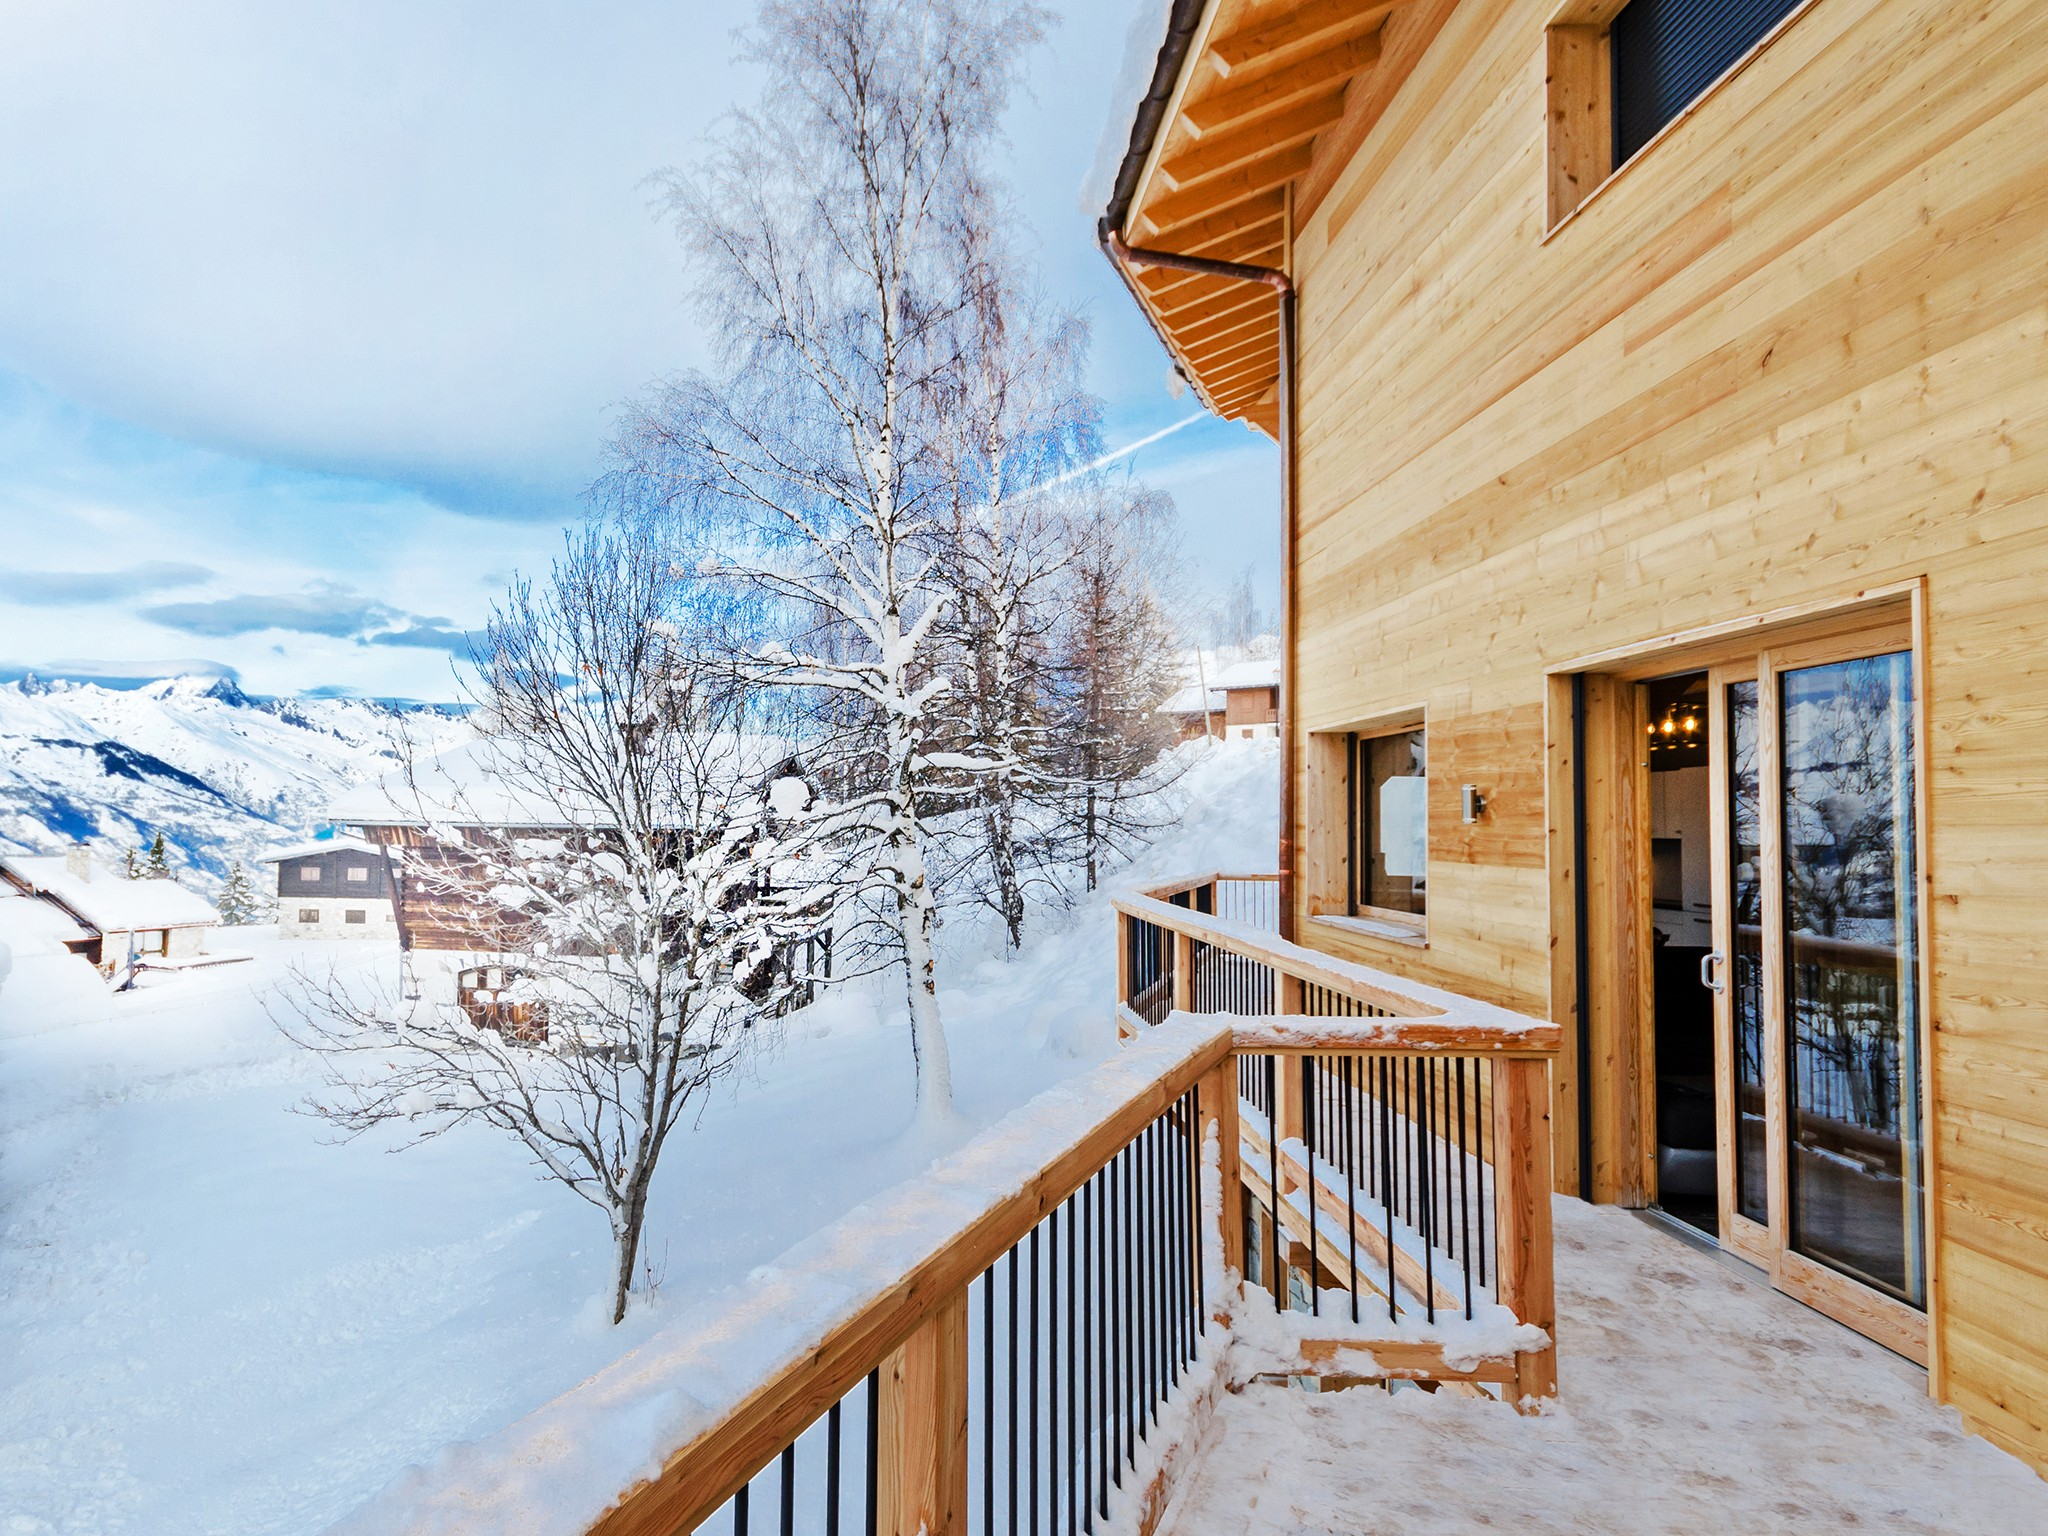 Chalet Paradise Star - panoramic view